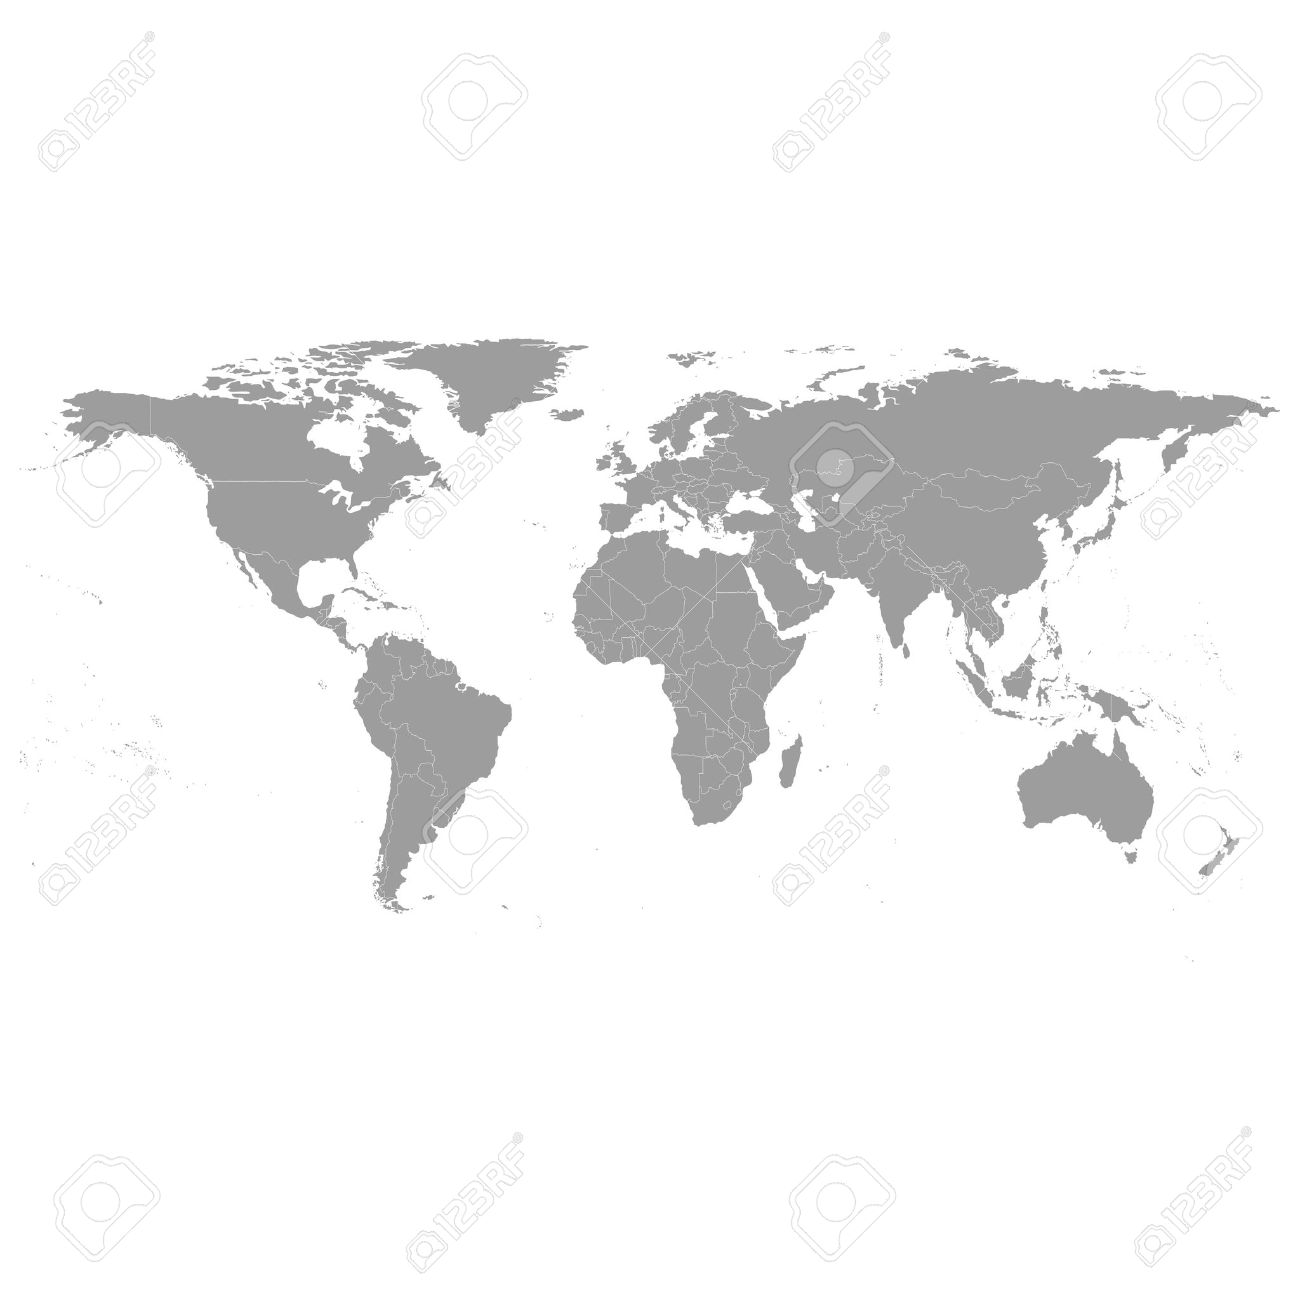 Gray political world map vector light design vector illustration gray political world map vector light design vector illustration stock vector 27847655 gumiabroncs Images